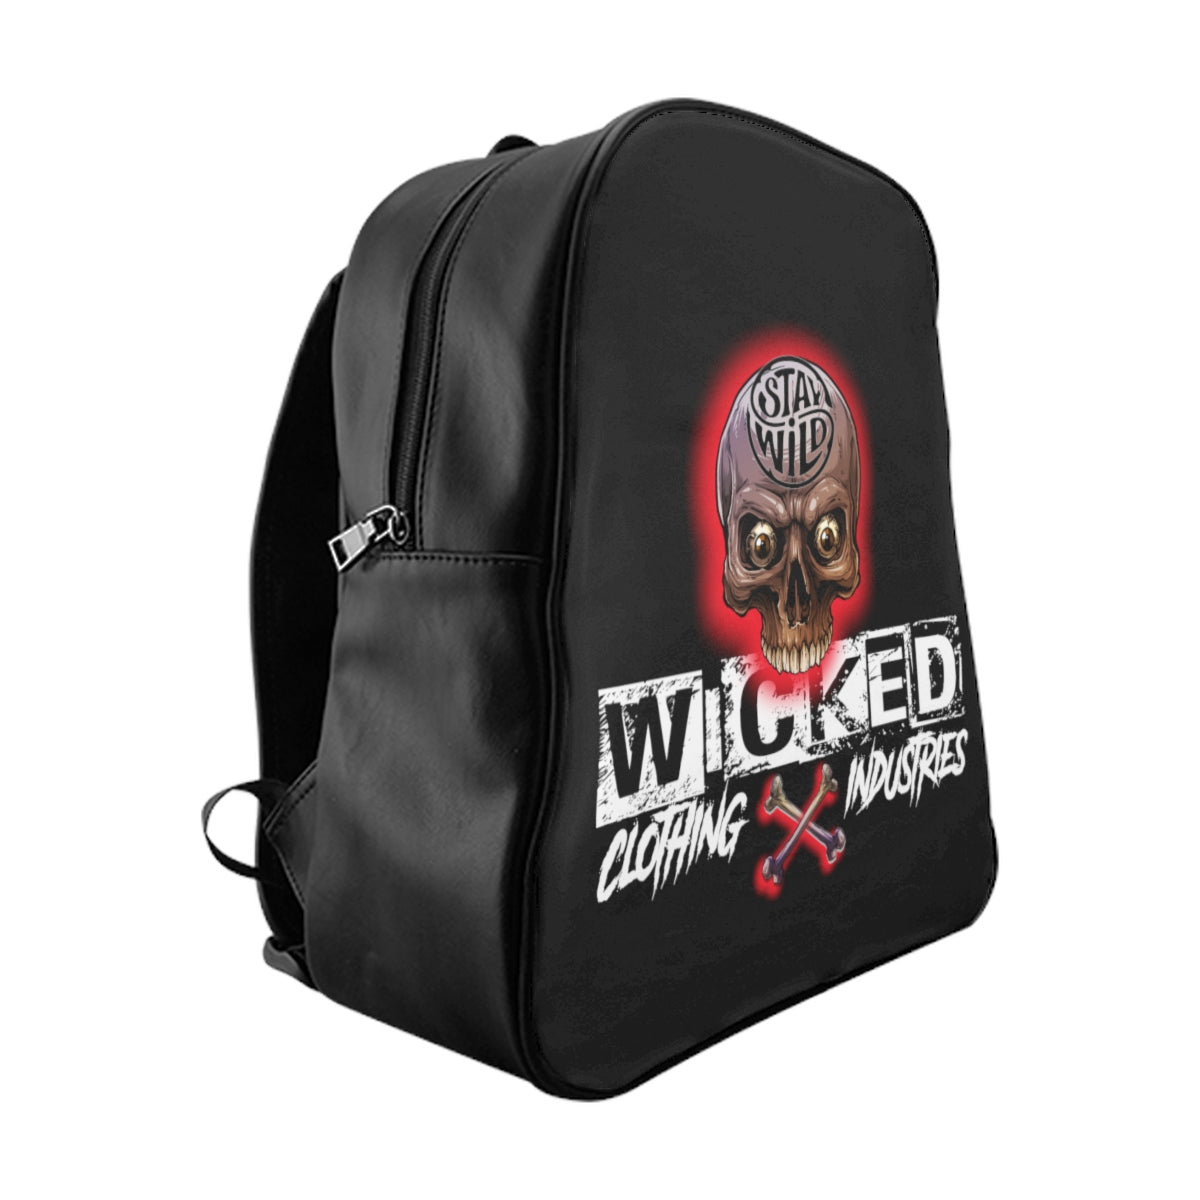 Stay Wild/ School Backpack